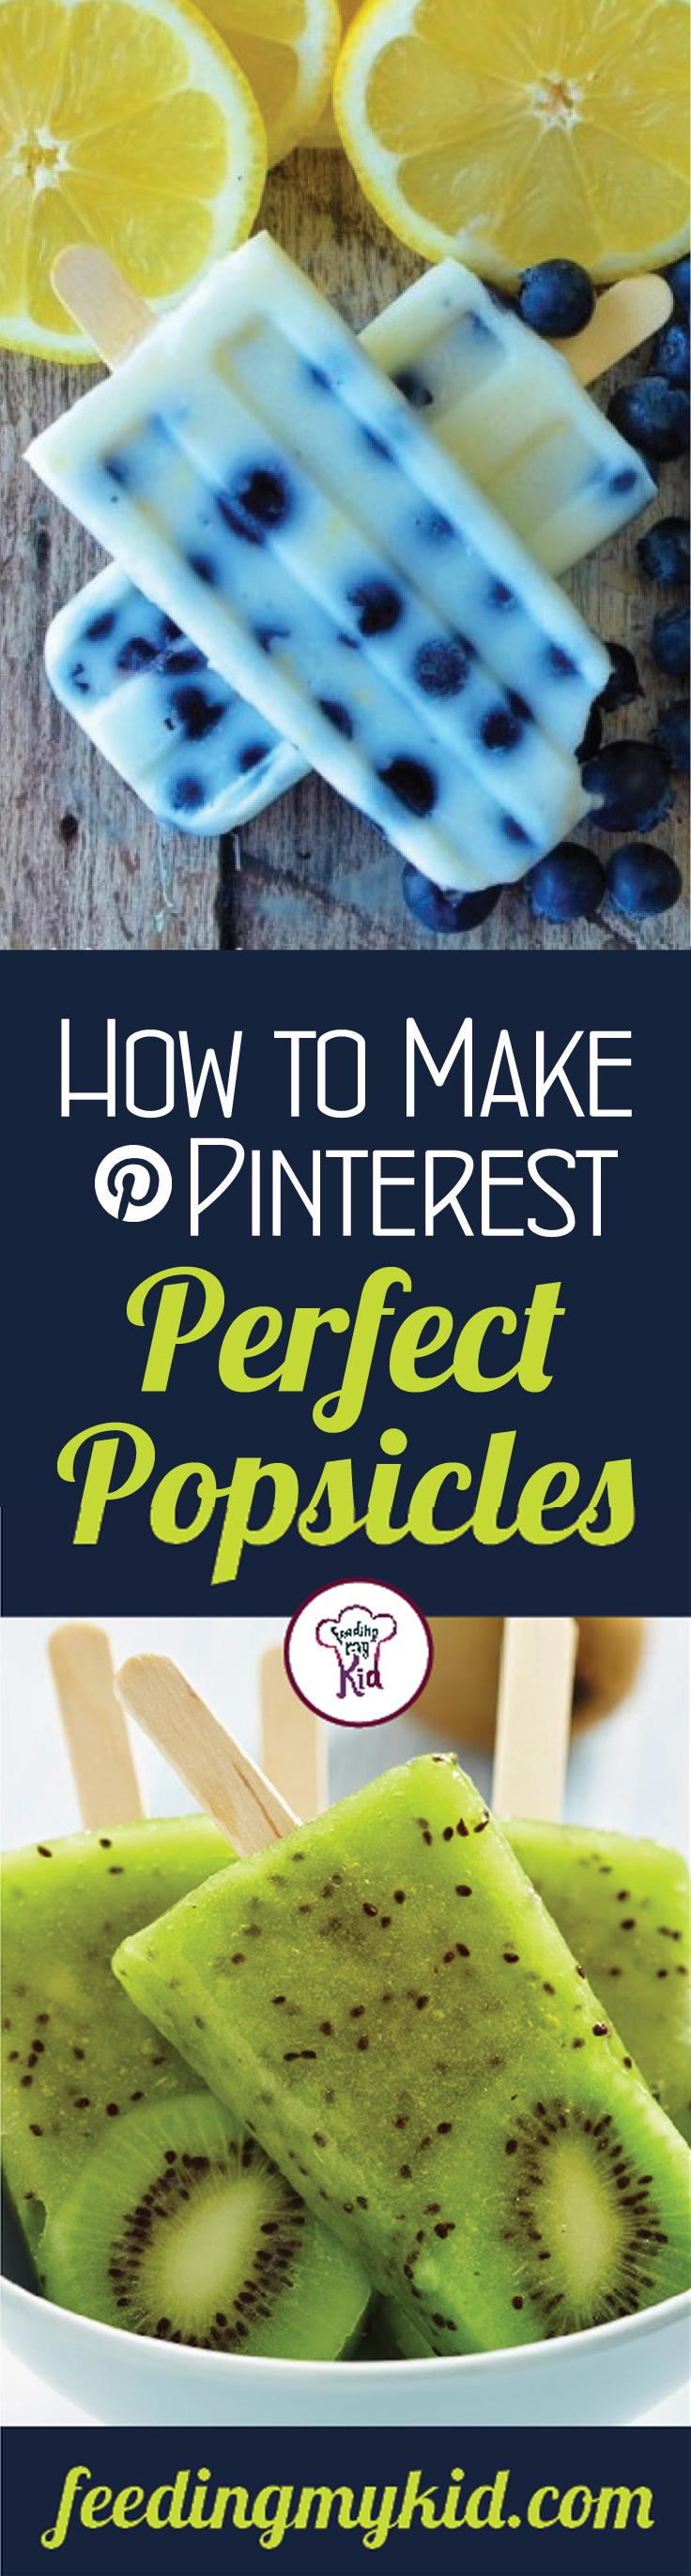 Pinterest Perfect Homemade Popsicles - Want a frozen treat but you don't know how to make your own popsicles? Freeze right there! We've got you covered! From Chia Coconut Pudding Pops to Cucumber Raspberry Pops; these are perfect for the whole family!